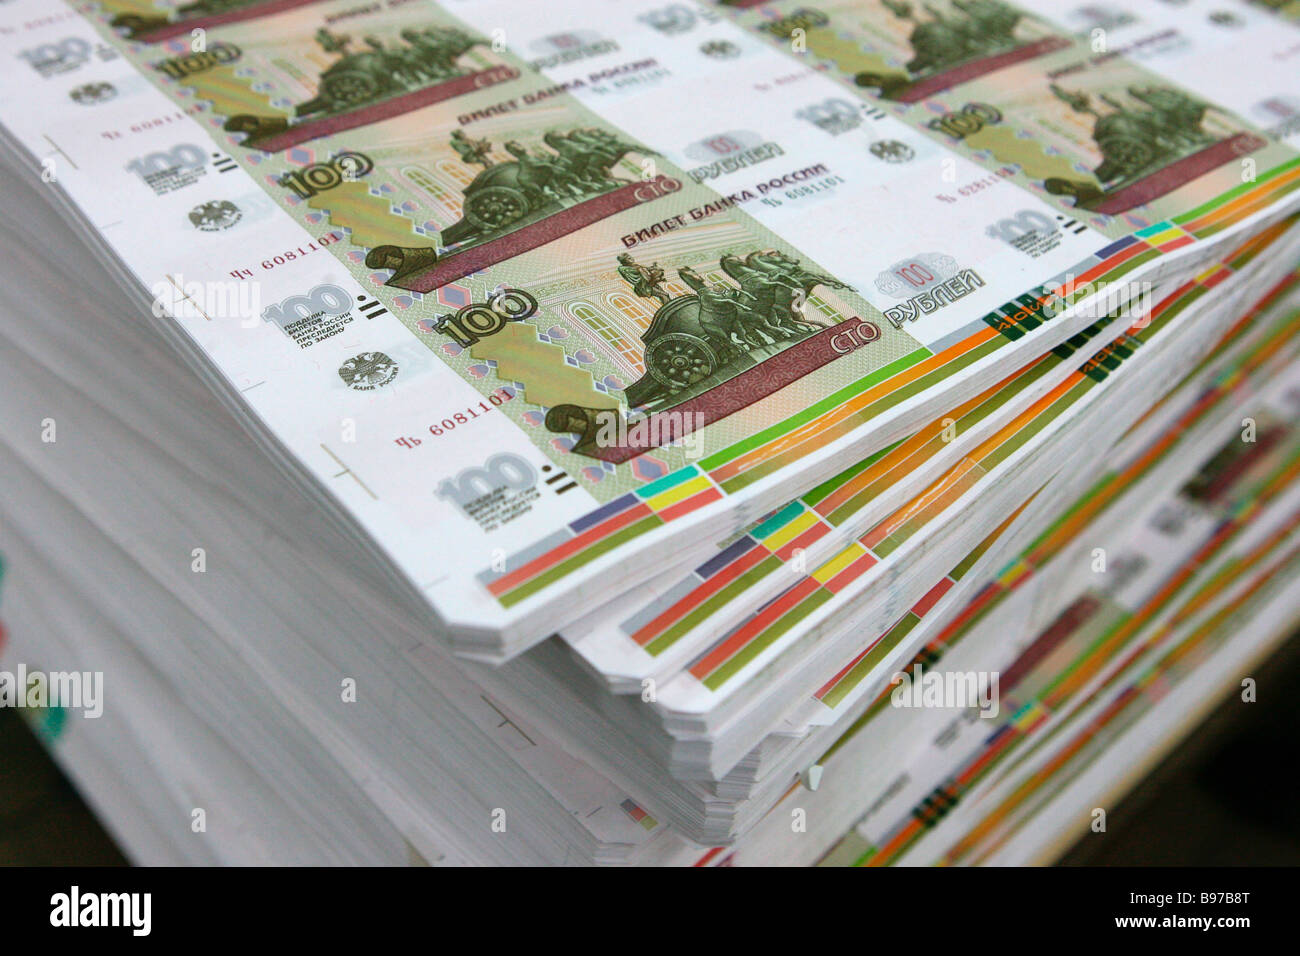 Sheets of 100 ruble bills at Moscow s Goznak printing factory - Stock Image